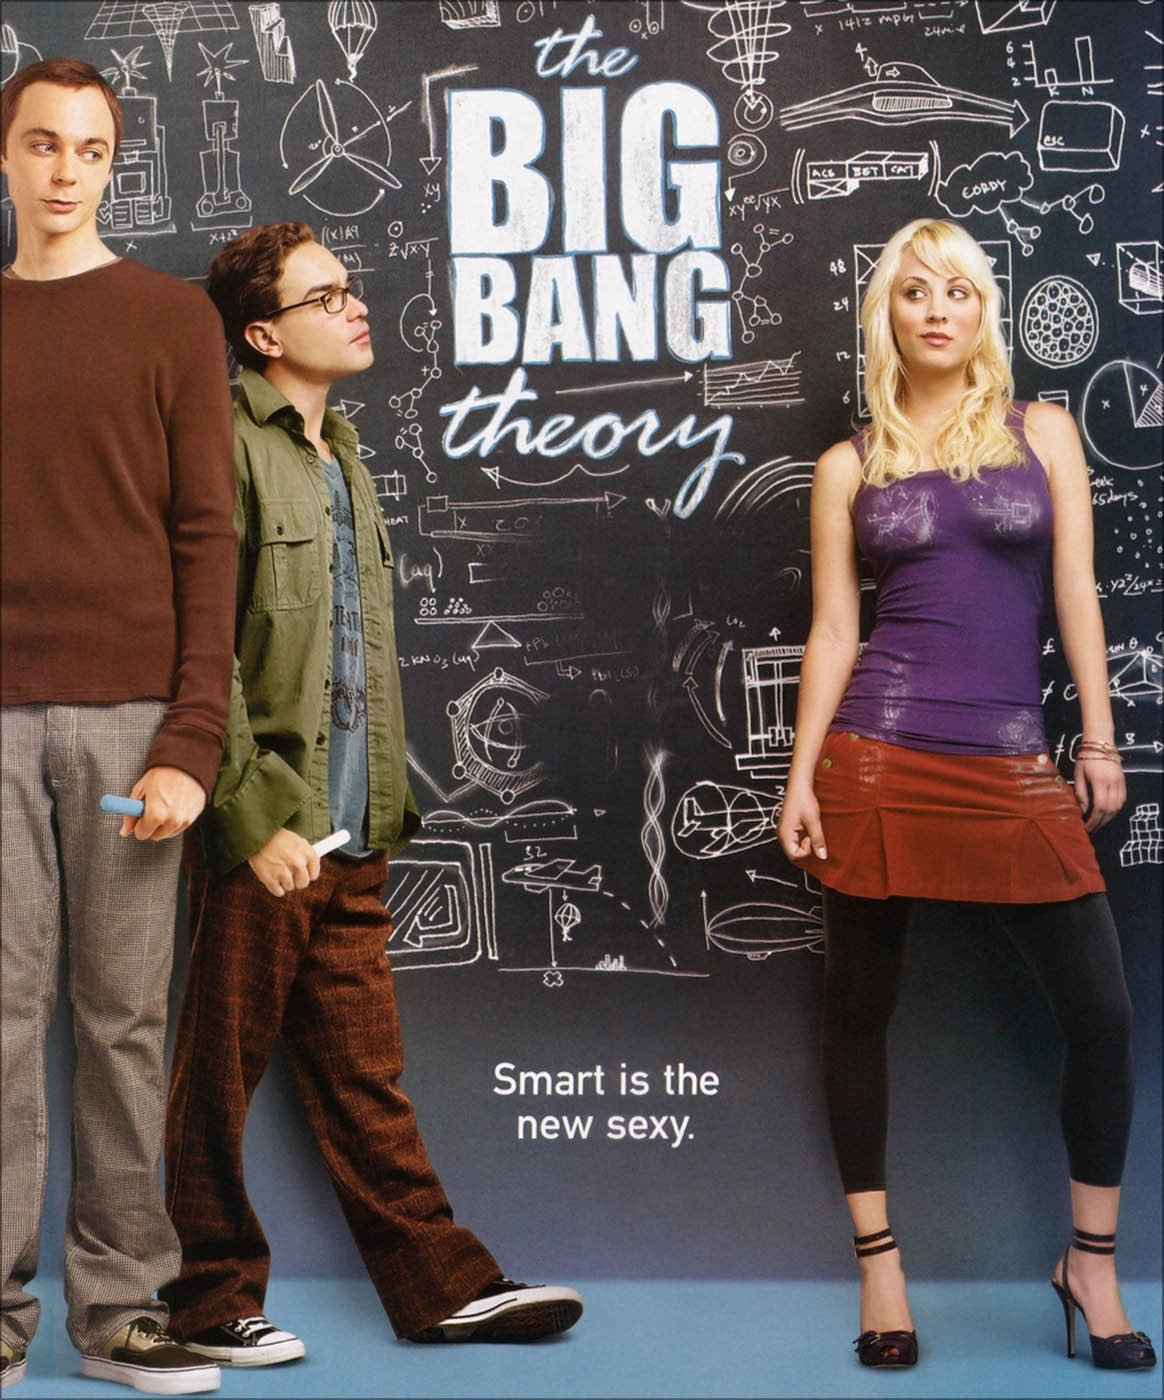 TBBT poster